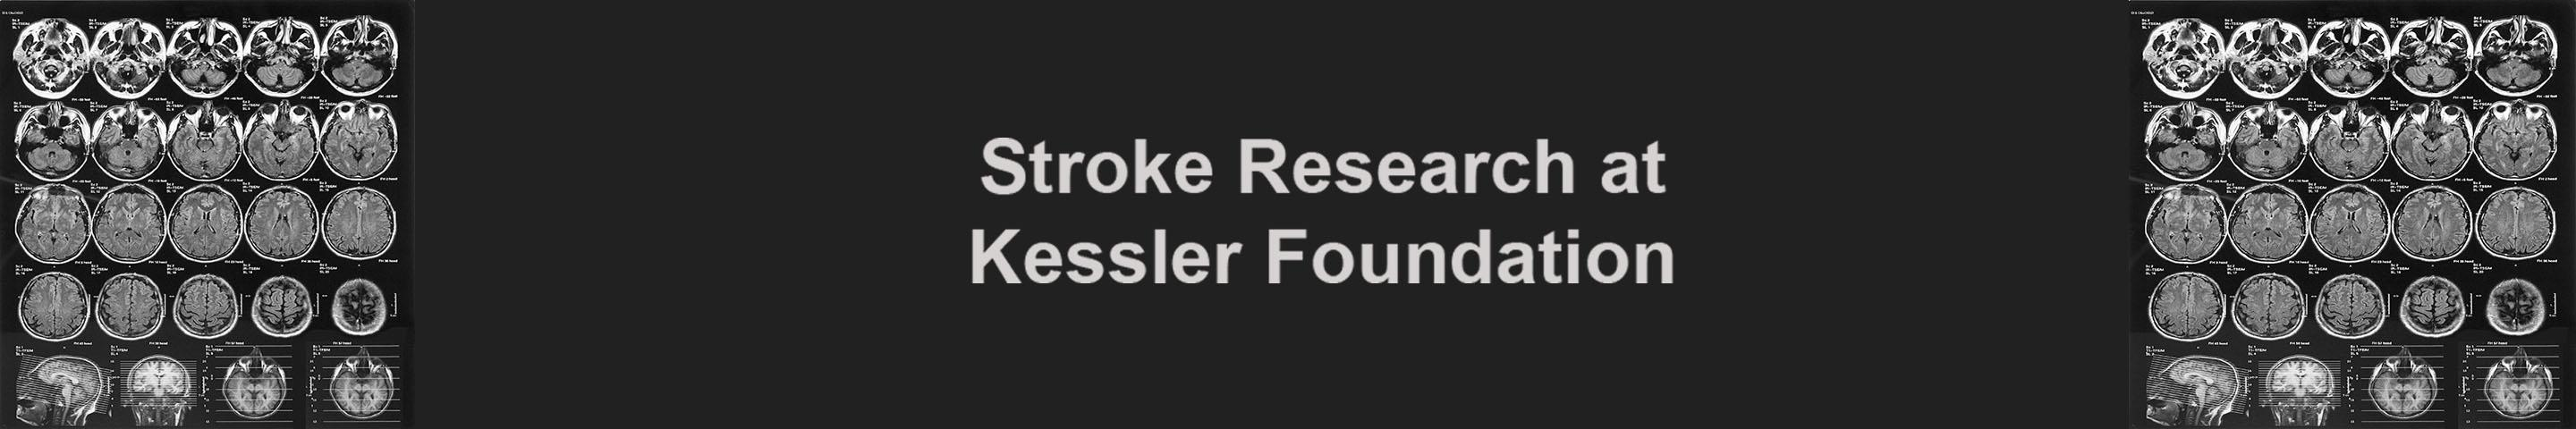 Stroke Research banner